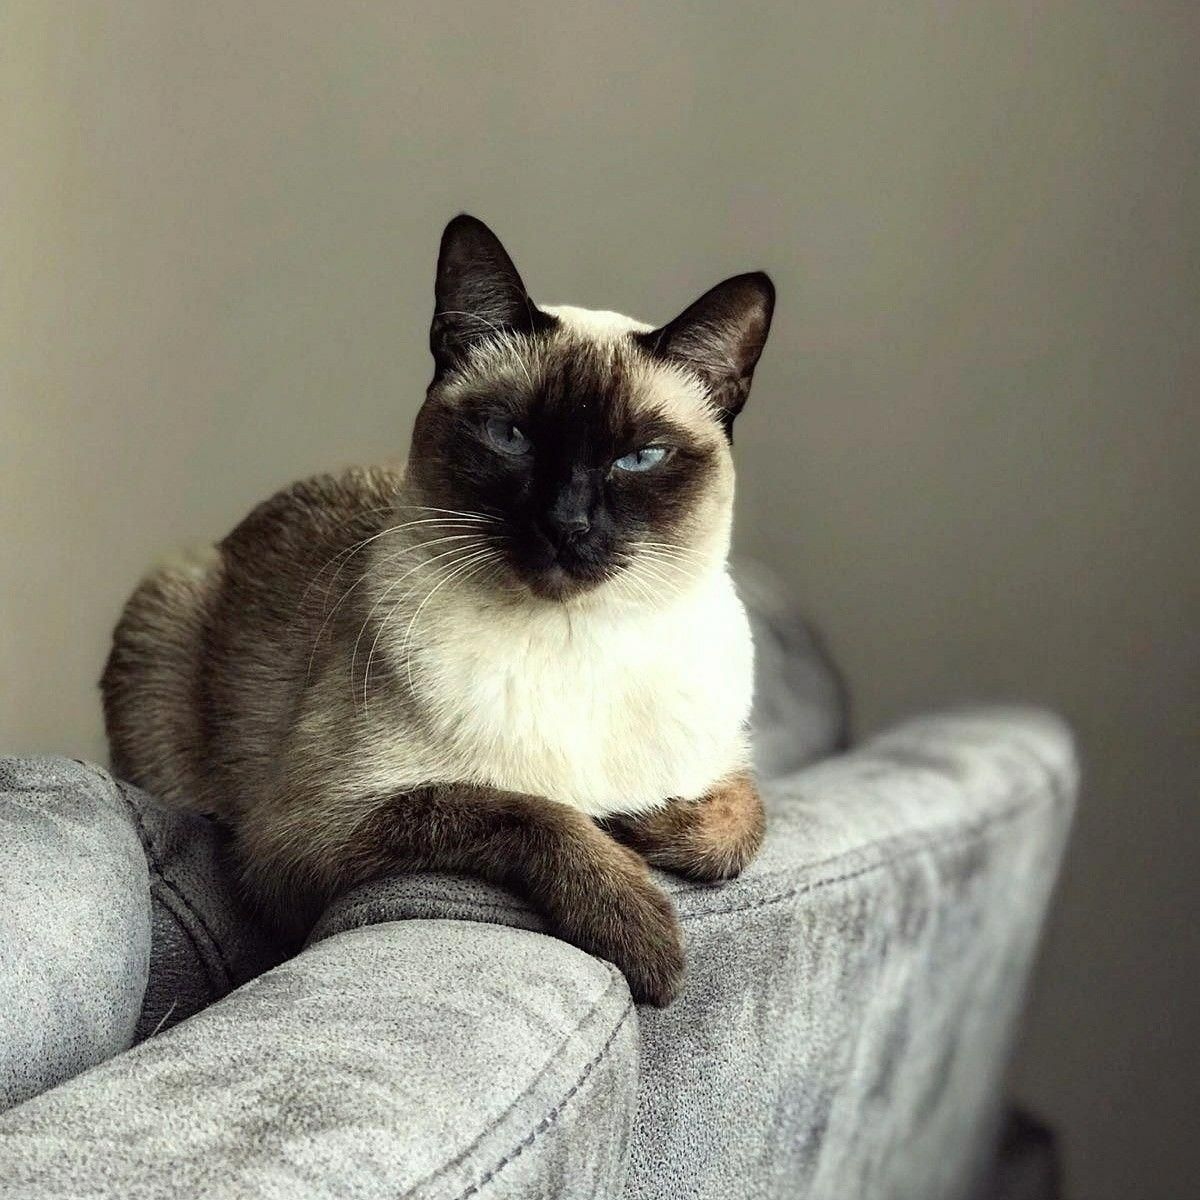 Pin By Patsy Lorentzen On Cats In 2020 Siamese Cats Cats Siamese Cats Facts